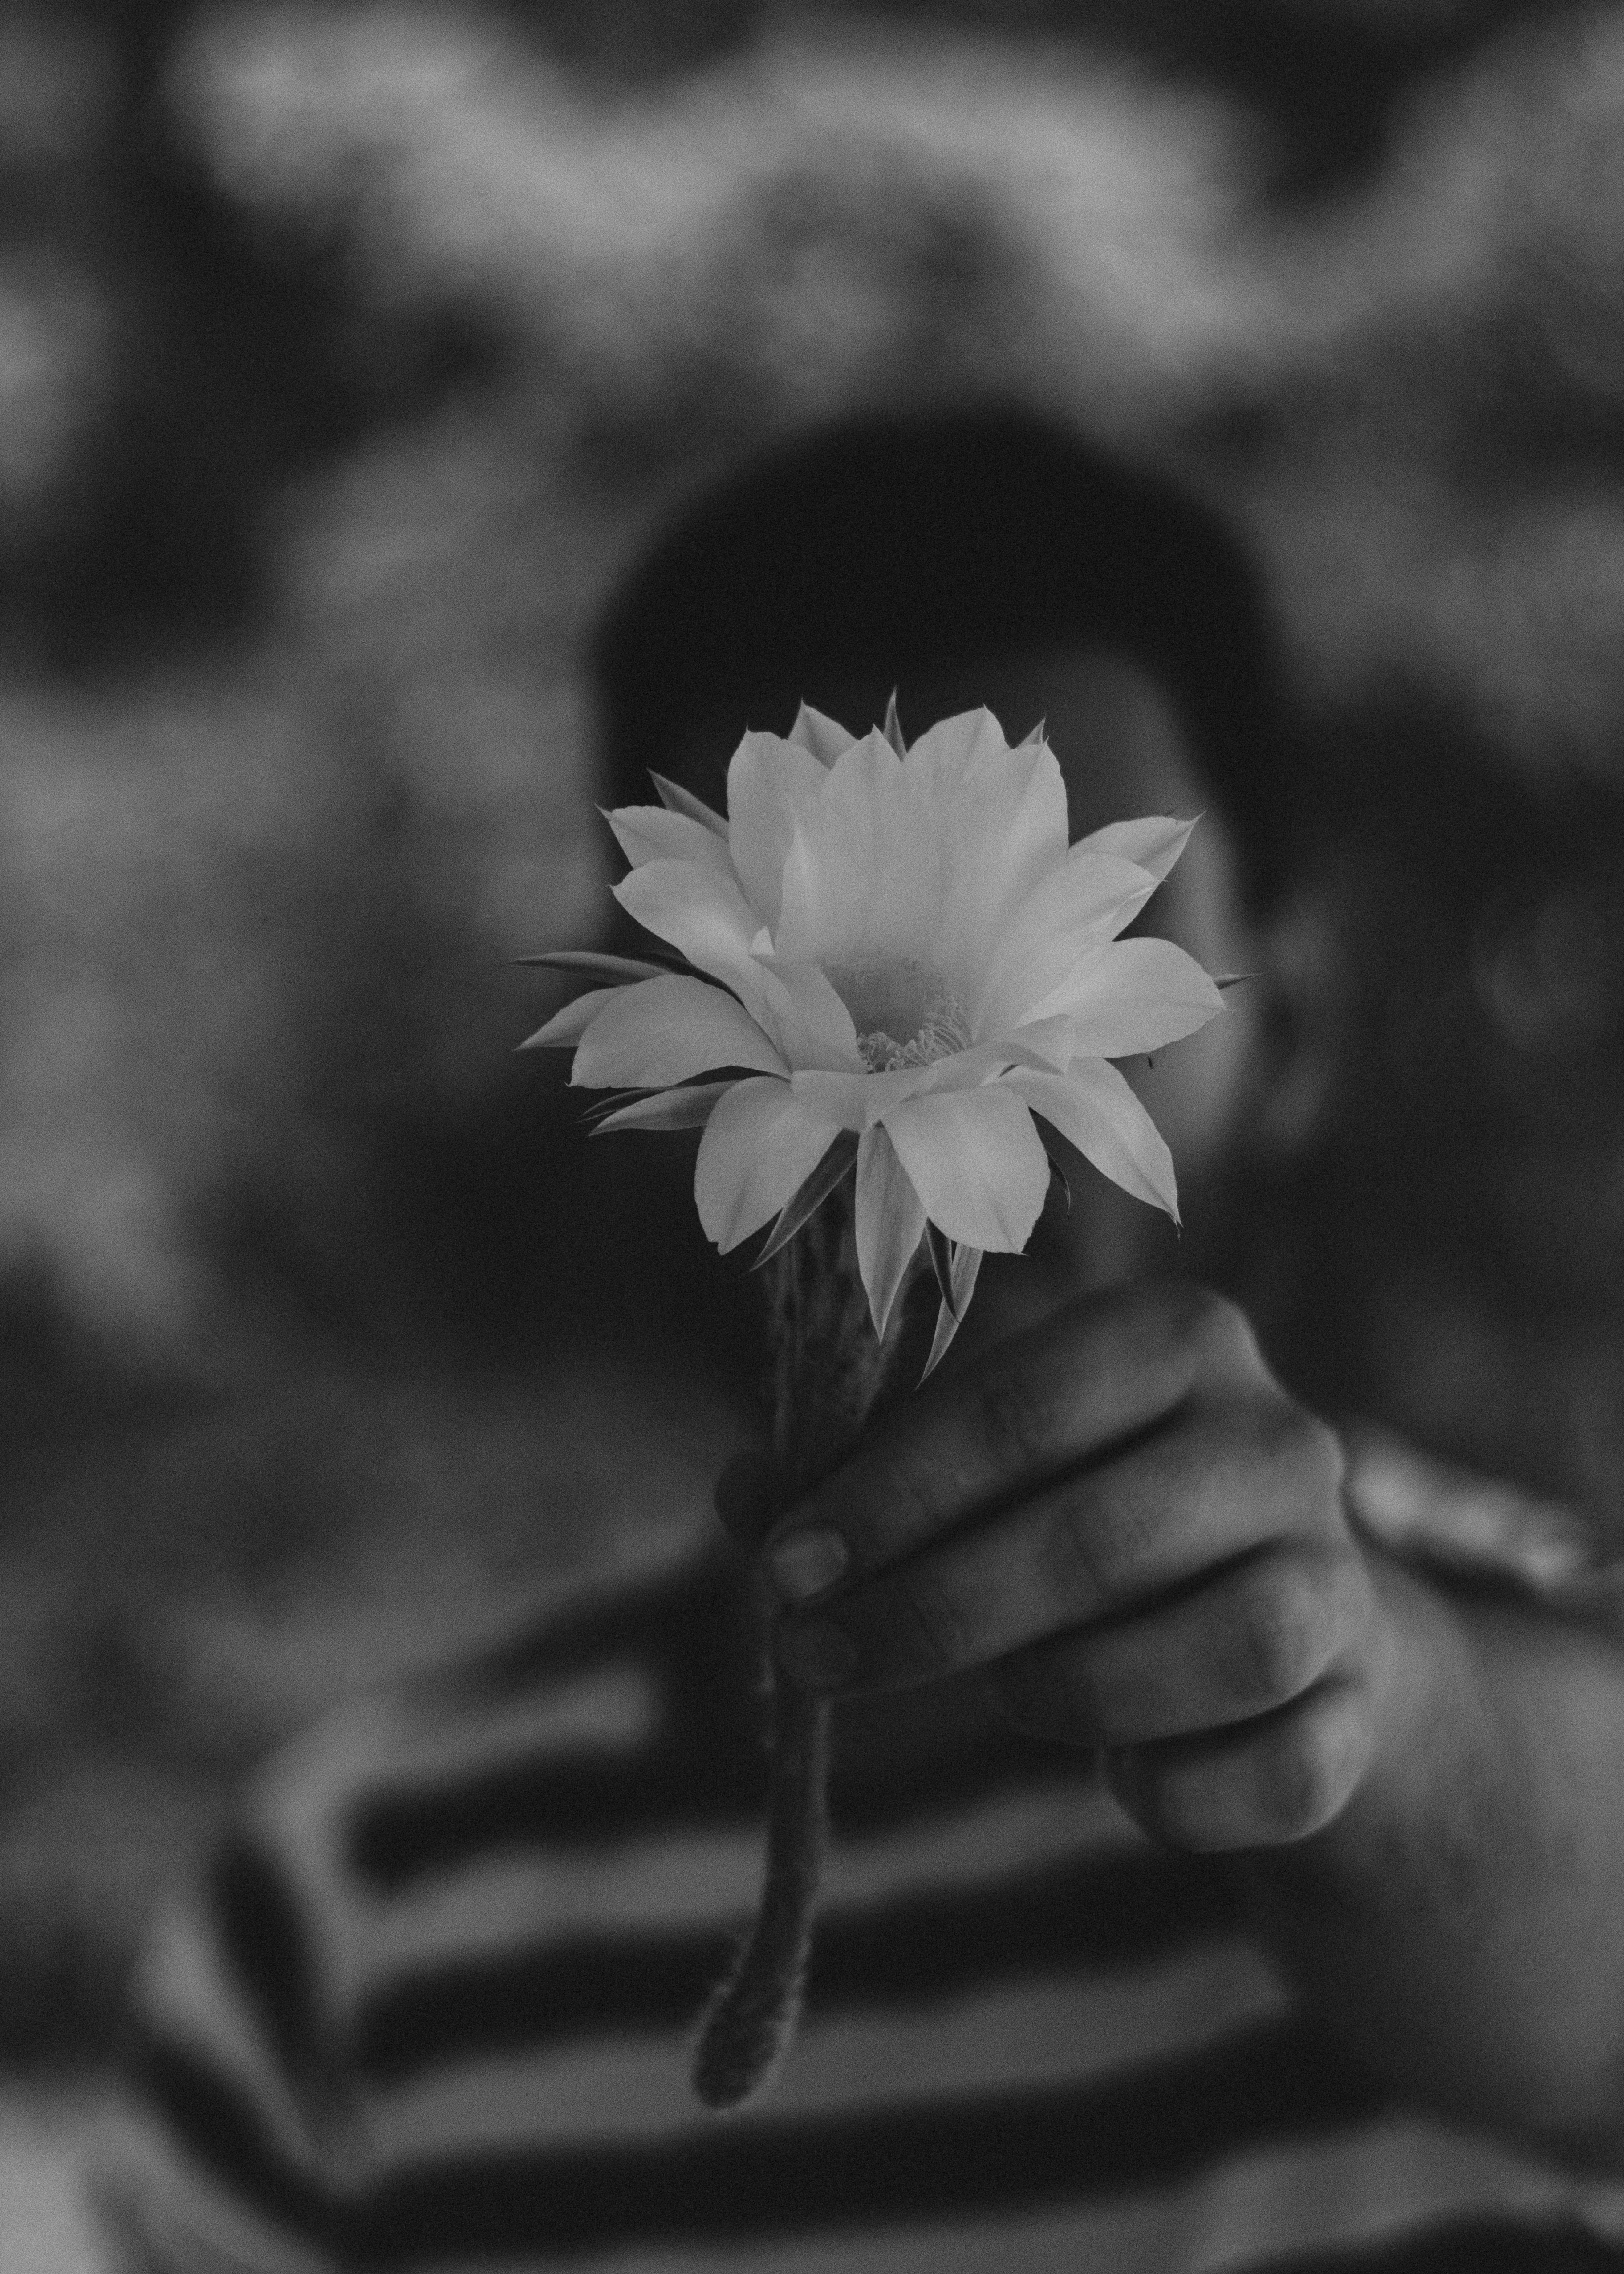 selective focus grayscale photography of person holding petaled flower